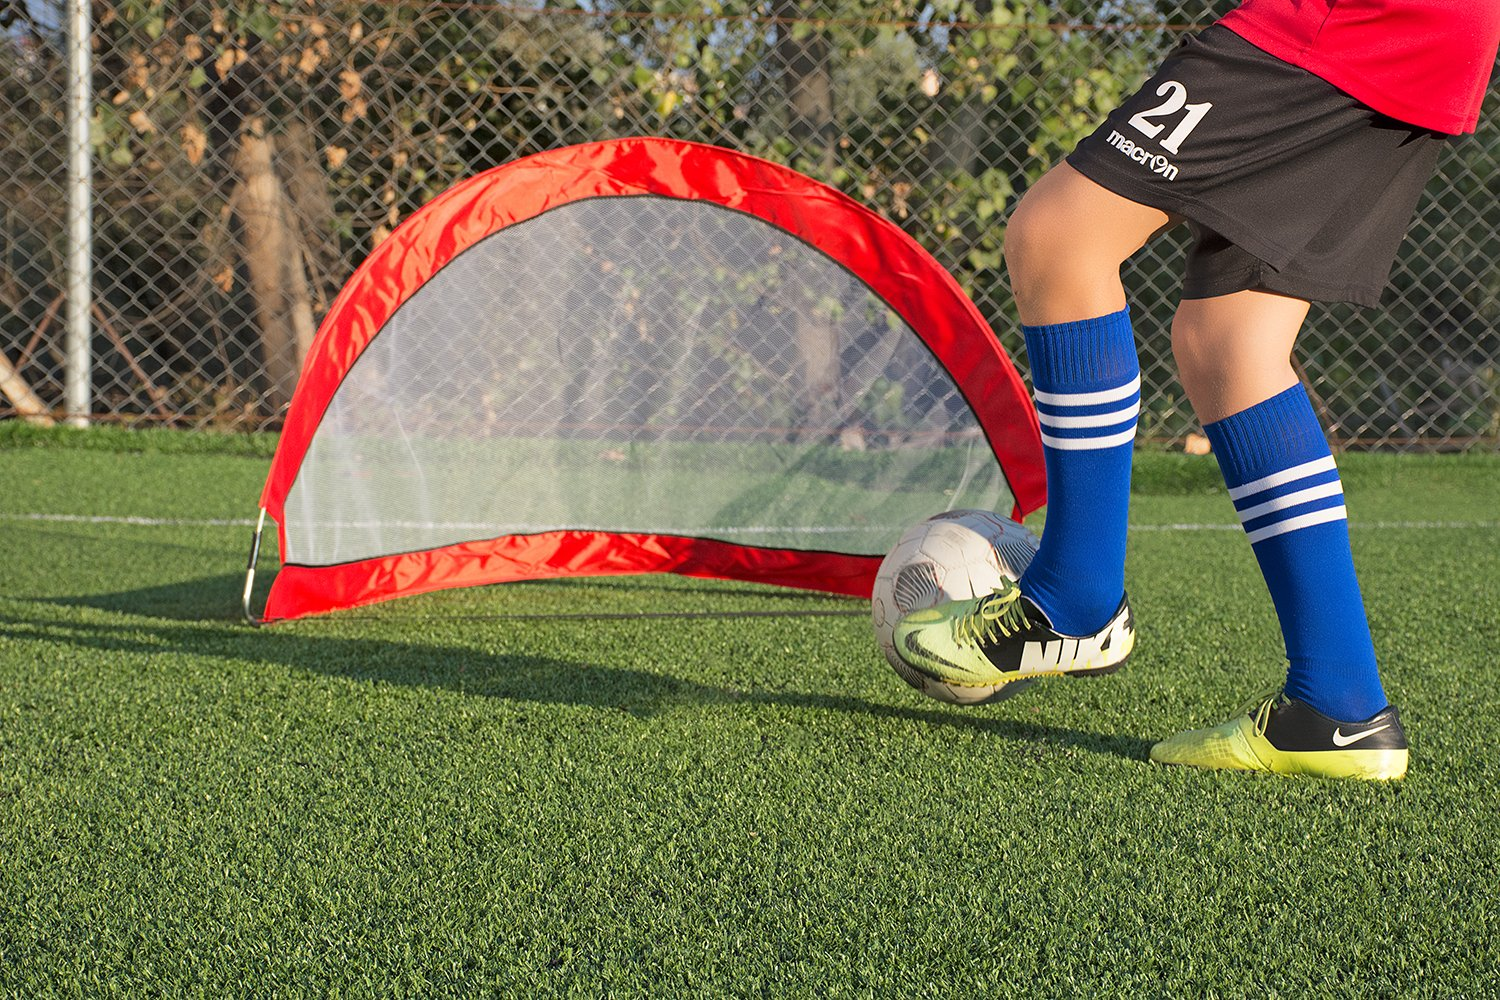 Abco Tech Portable Soccer Goal Set for Training, Practice & Game – Pop-up Soccer Net – 2 Soccer Goals, 6 Disc Cones & 8 Spikes – Carry Bag – Easy to Assemble & Store – Be it Backyard or Public Fields by Abco Tech (Image #8)